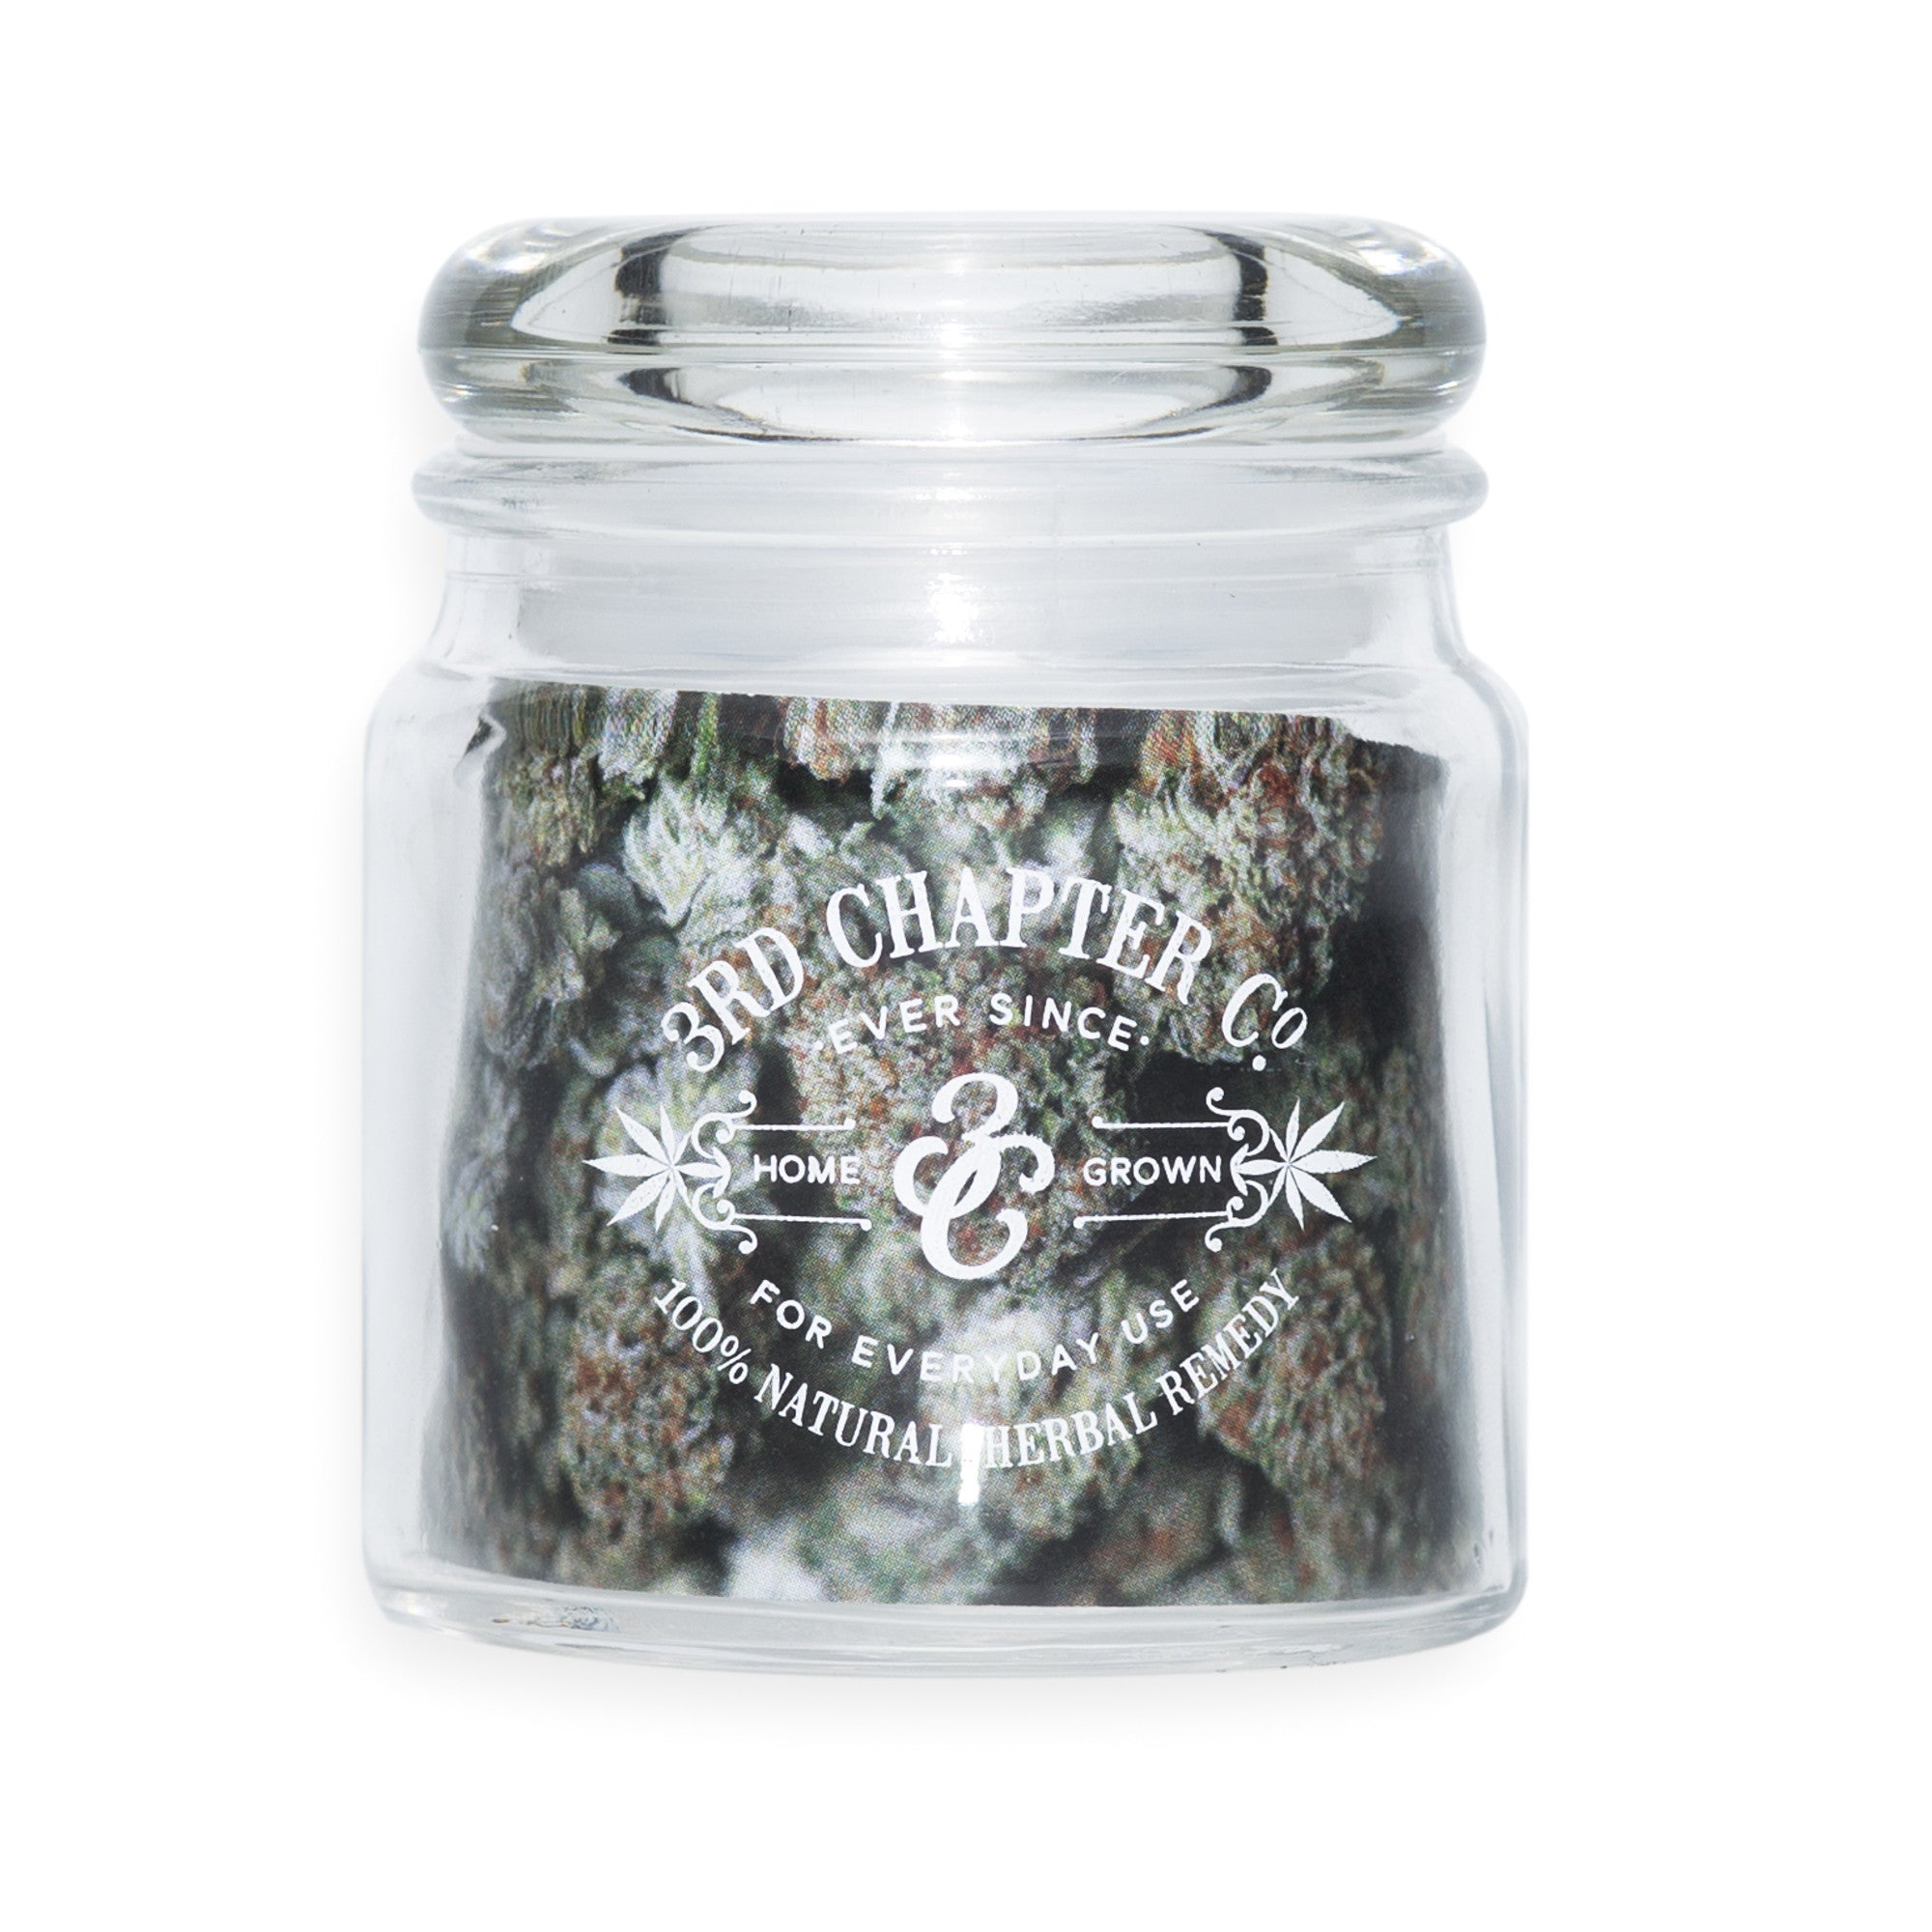 Stash Jar & Rolling Tray - 3rdchapter - 2